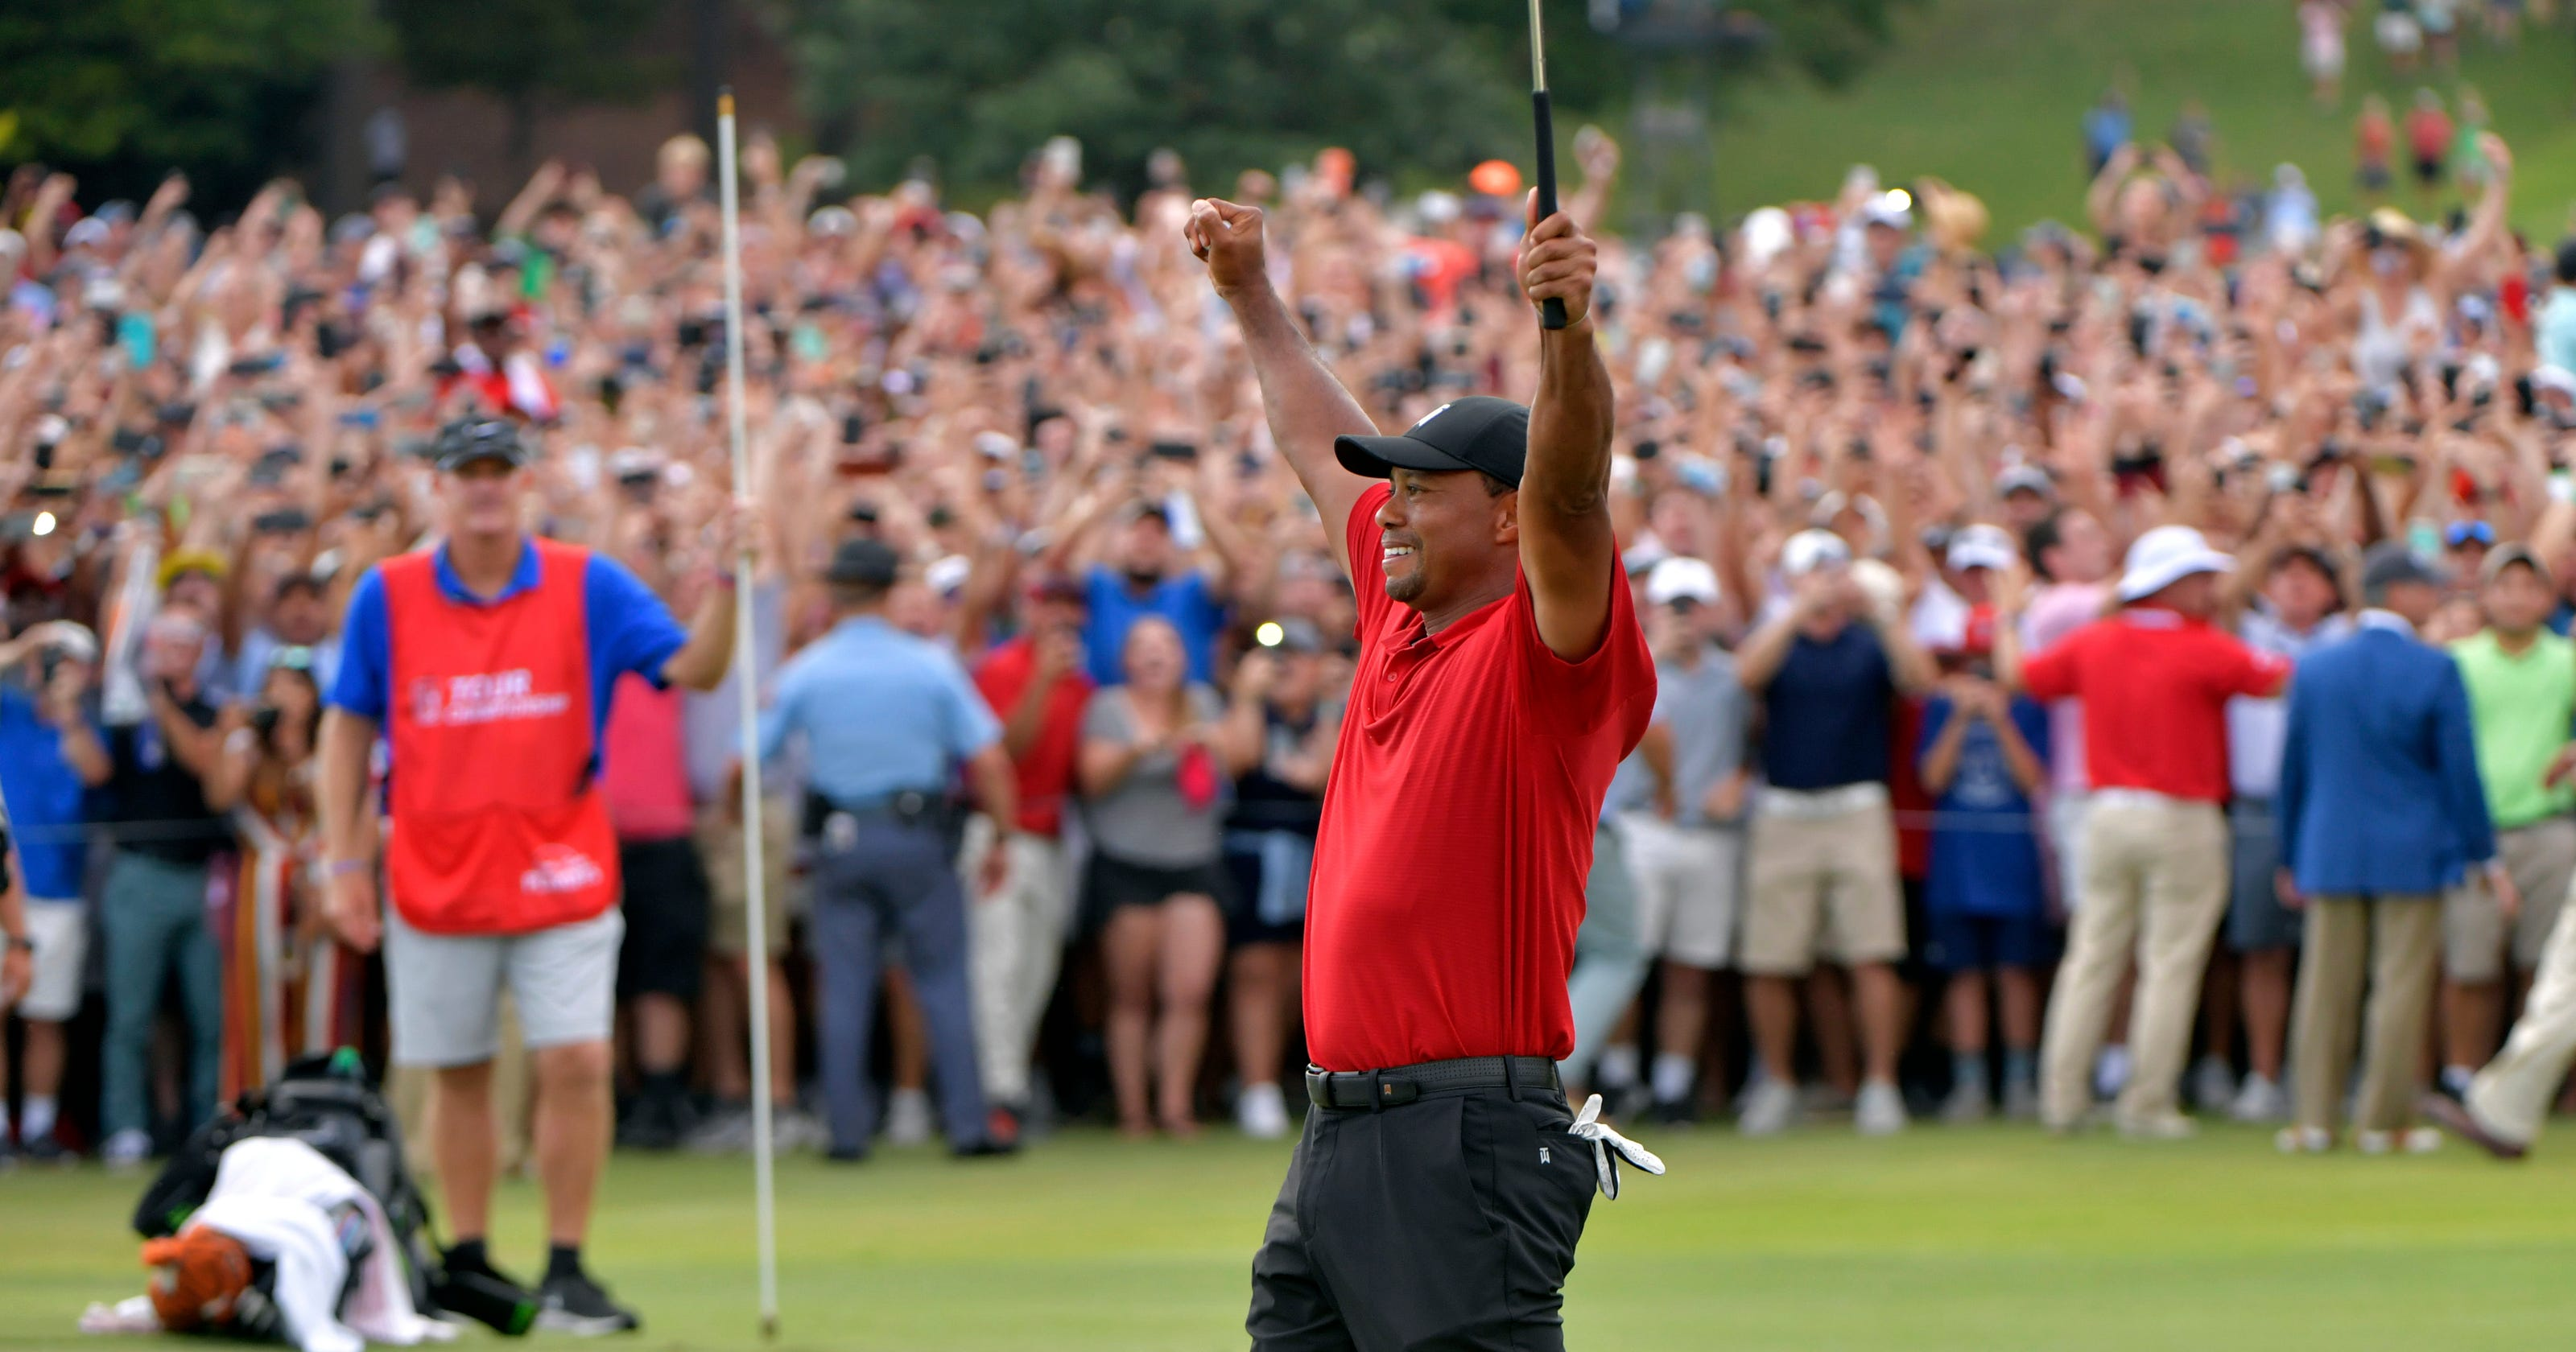 Kết quả hình ảnh cho Tiger Woods returned with the 80th PGA Tour title in his career